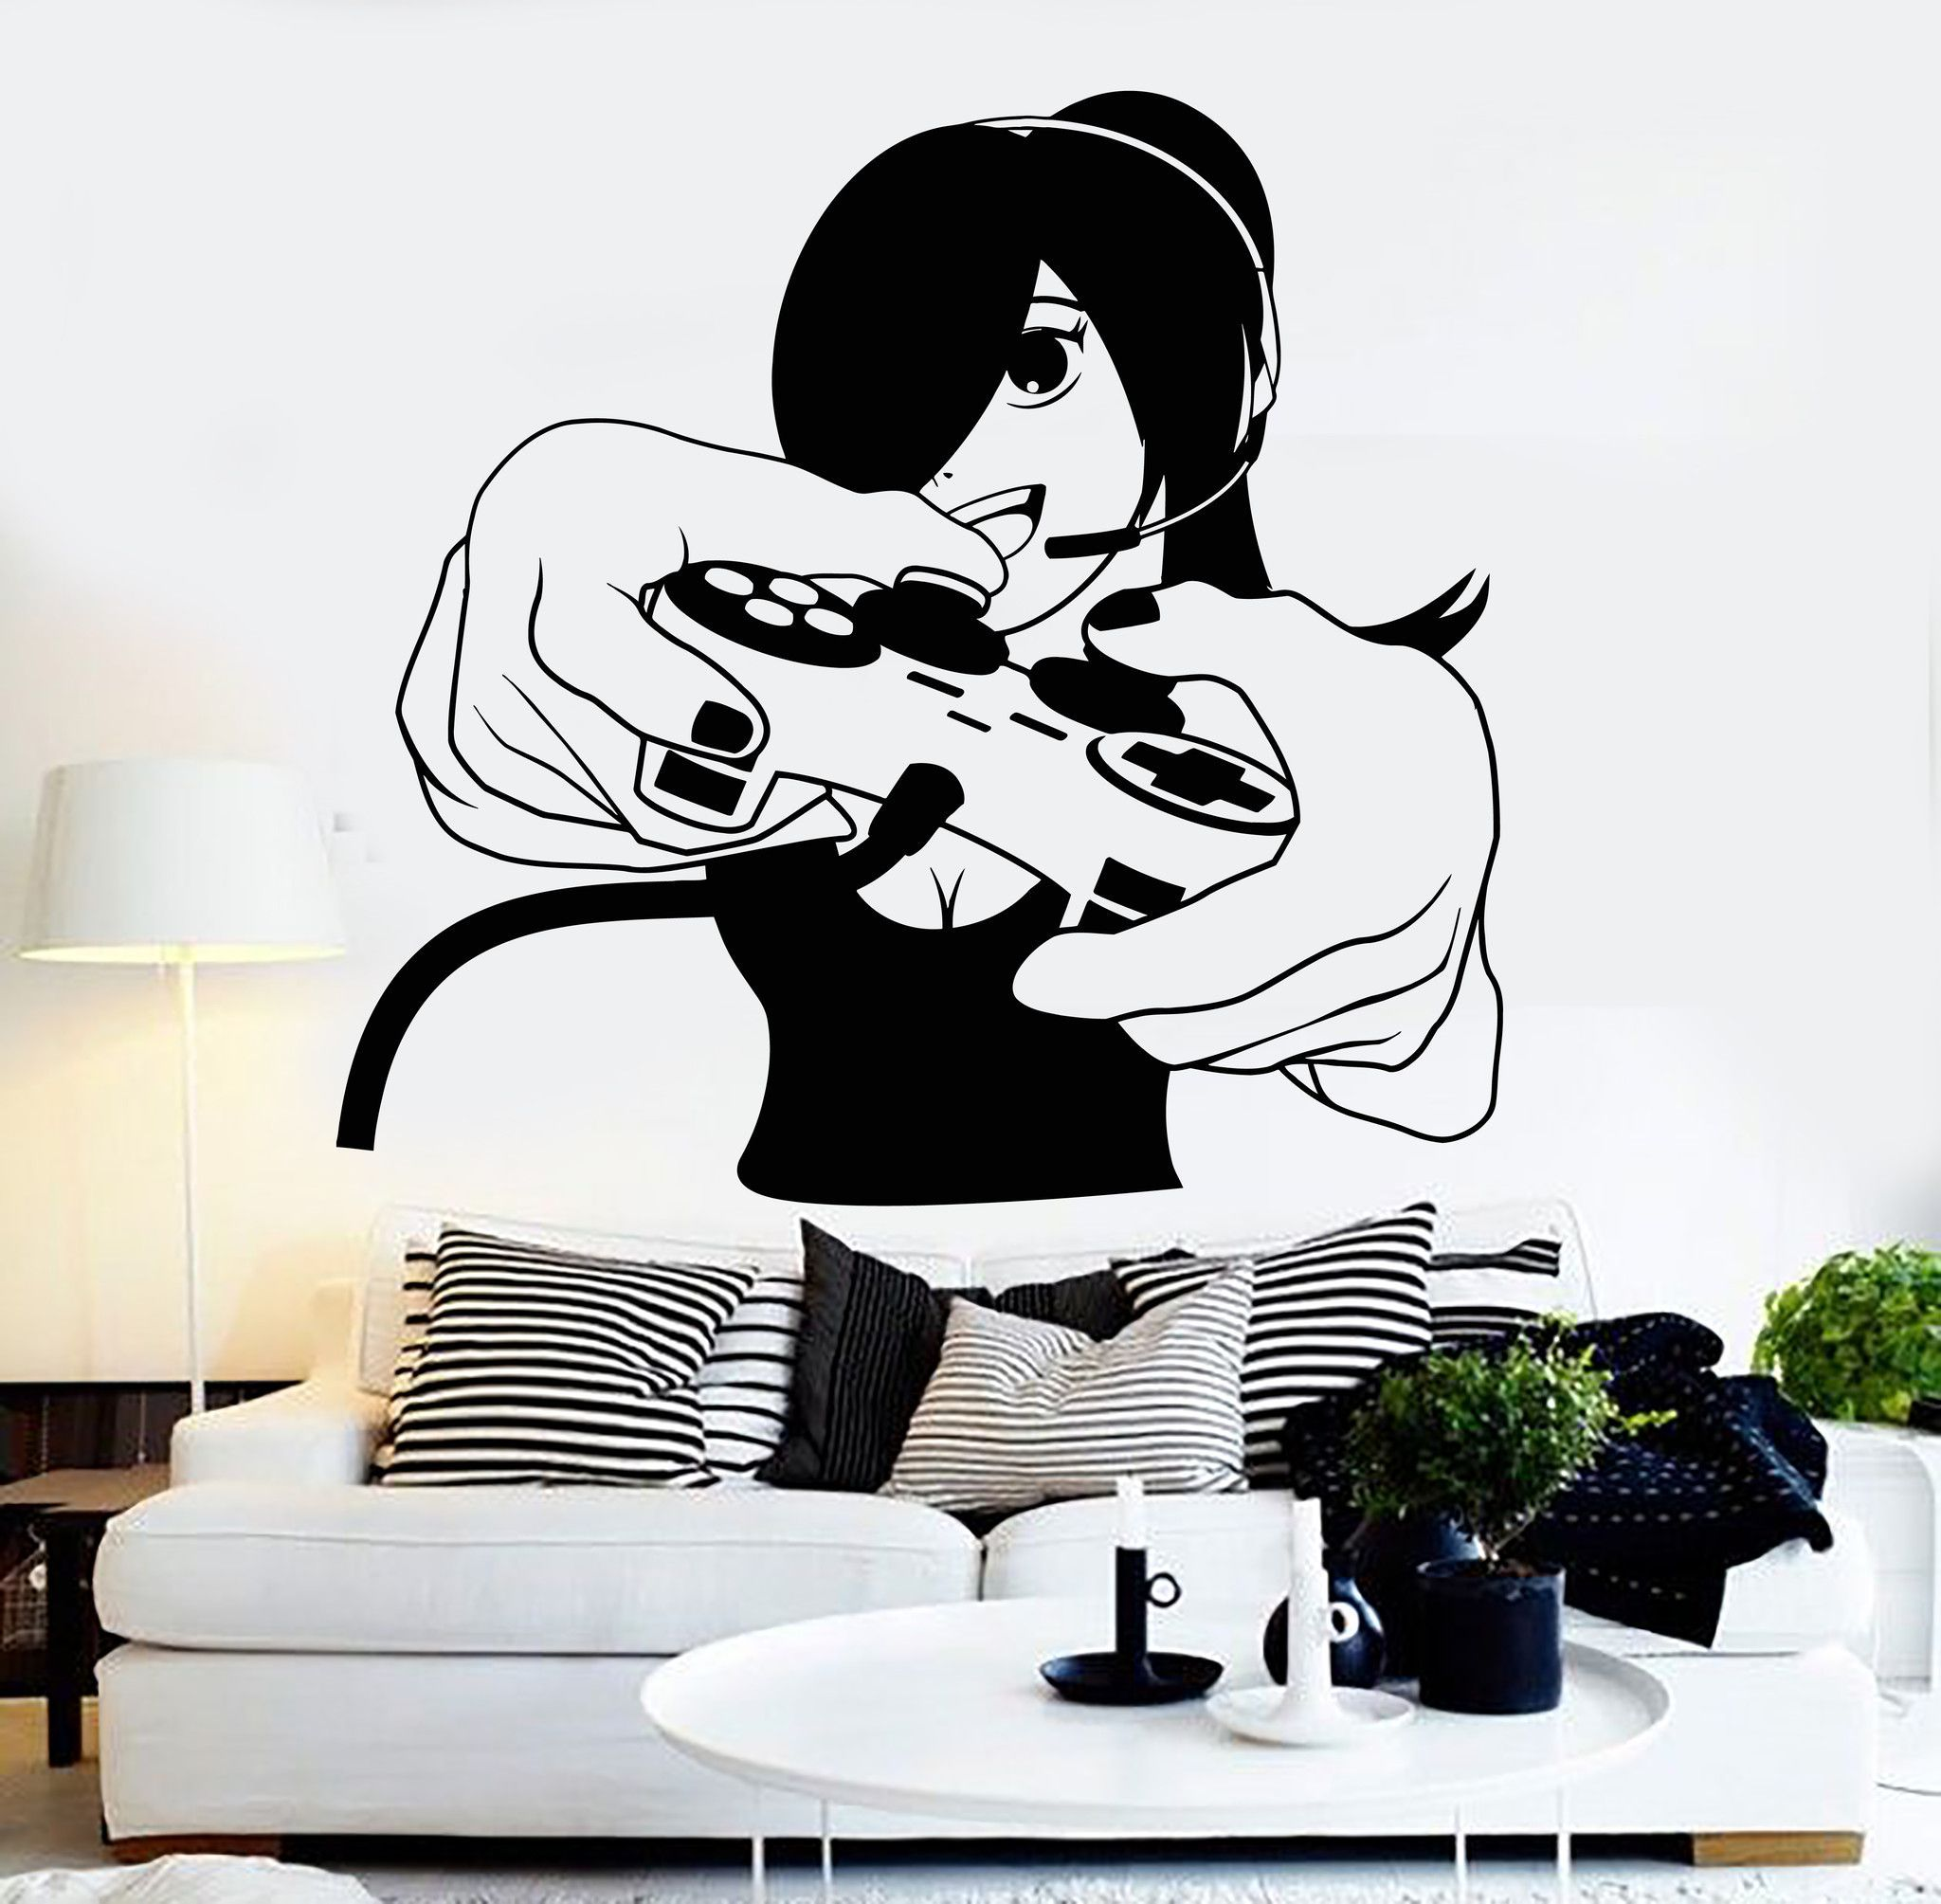 Vinyl Wall Decal Gamer Girl Video Game Play Room Gaming